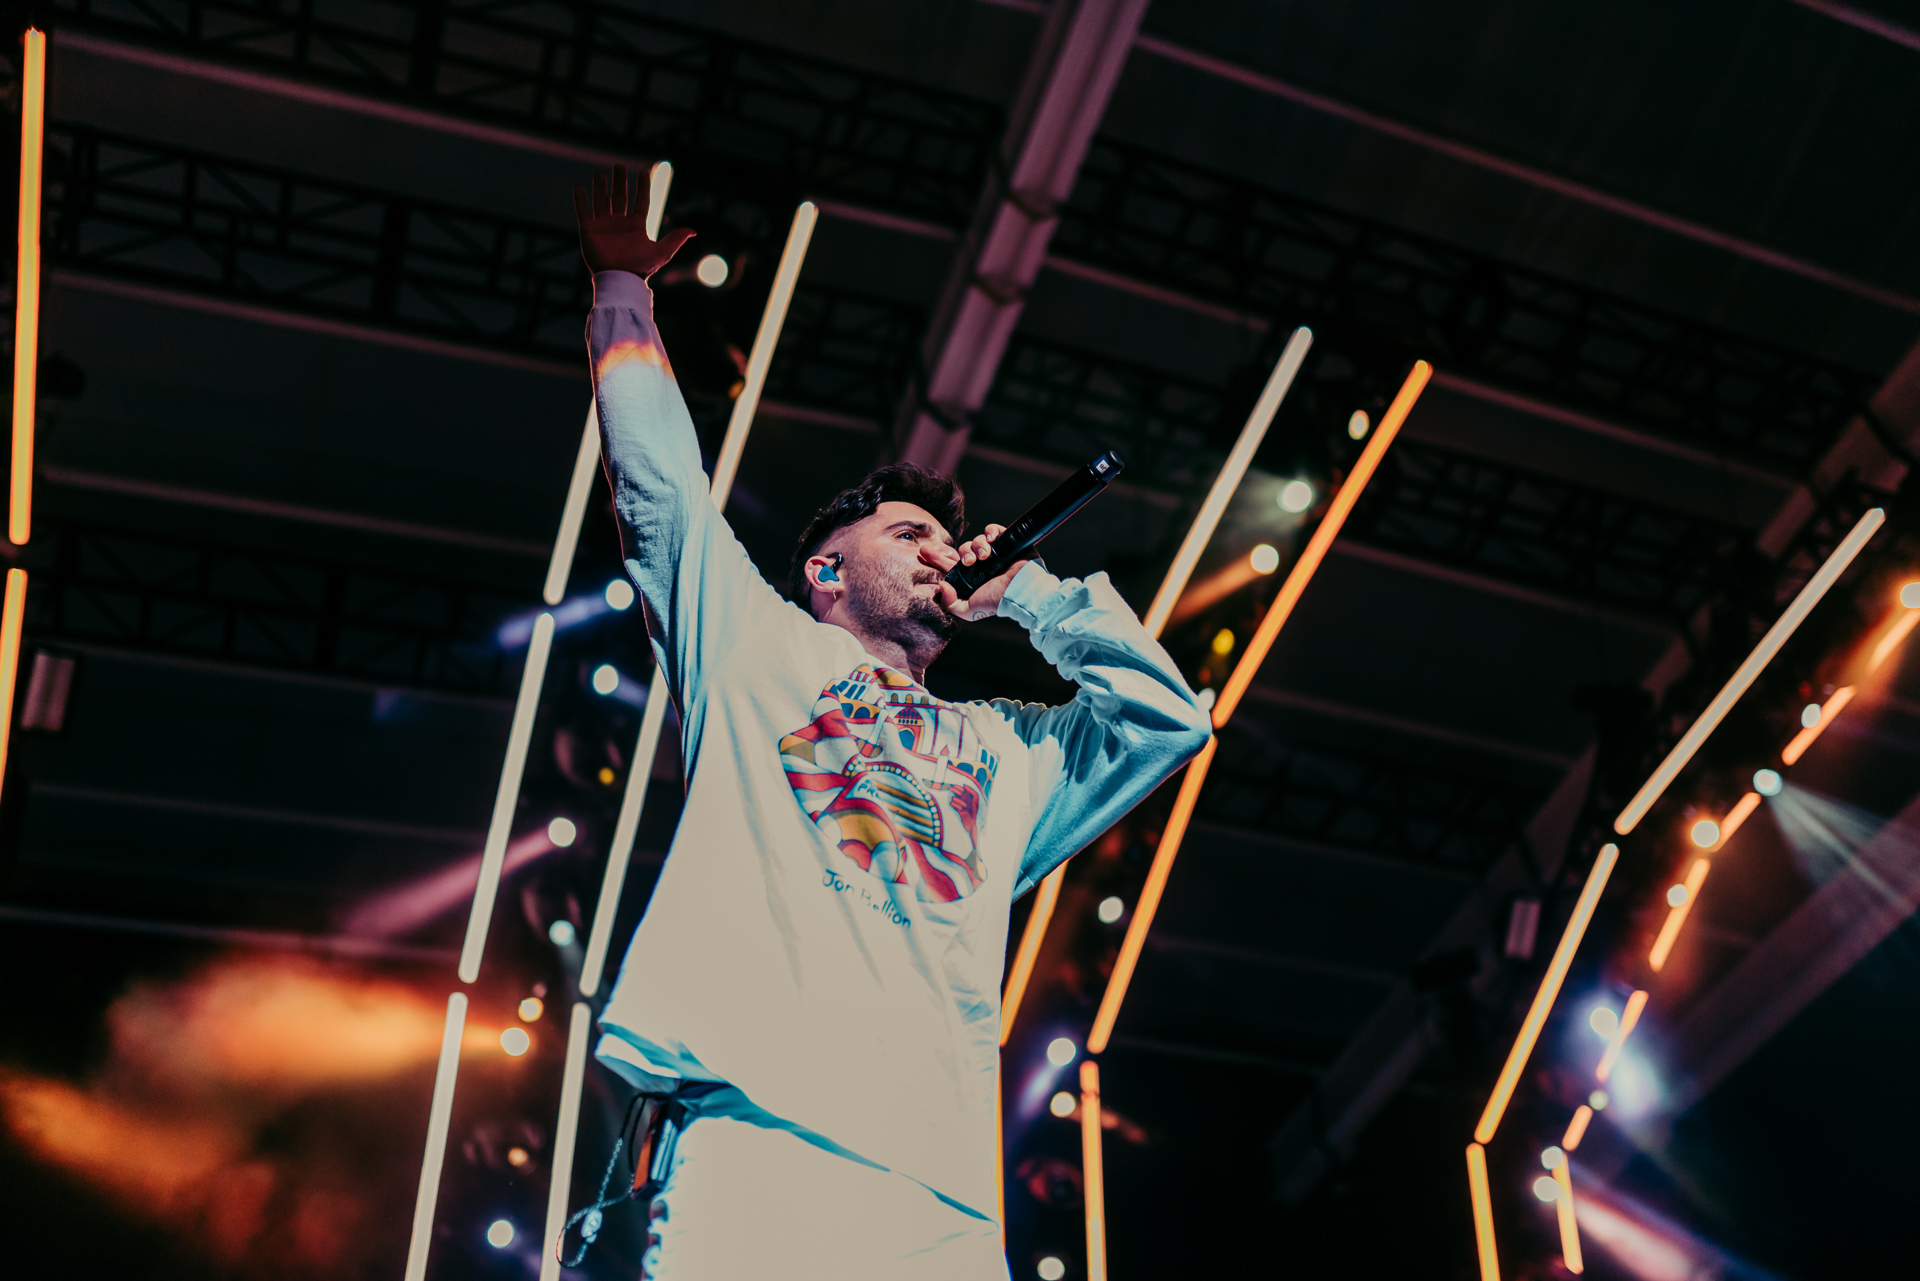 Jon Bellion concludes the Glory Sound Prep tour in Baltimore, MD